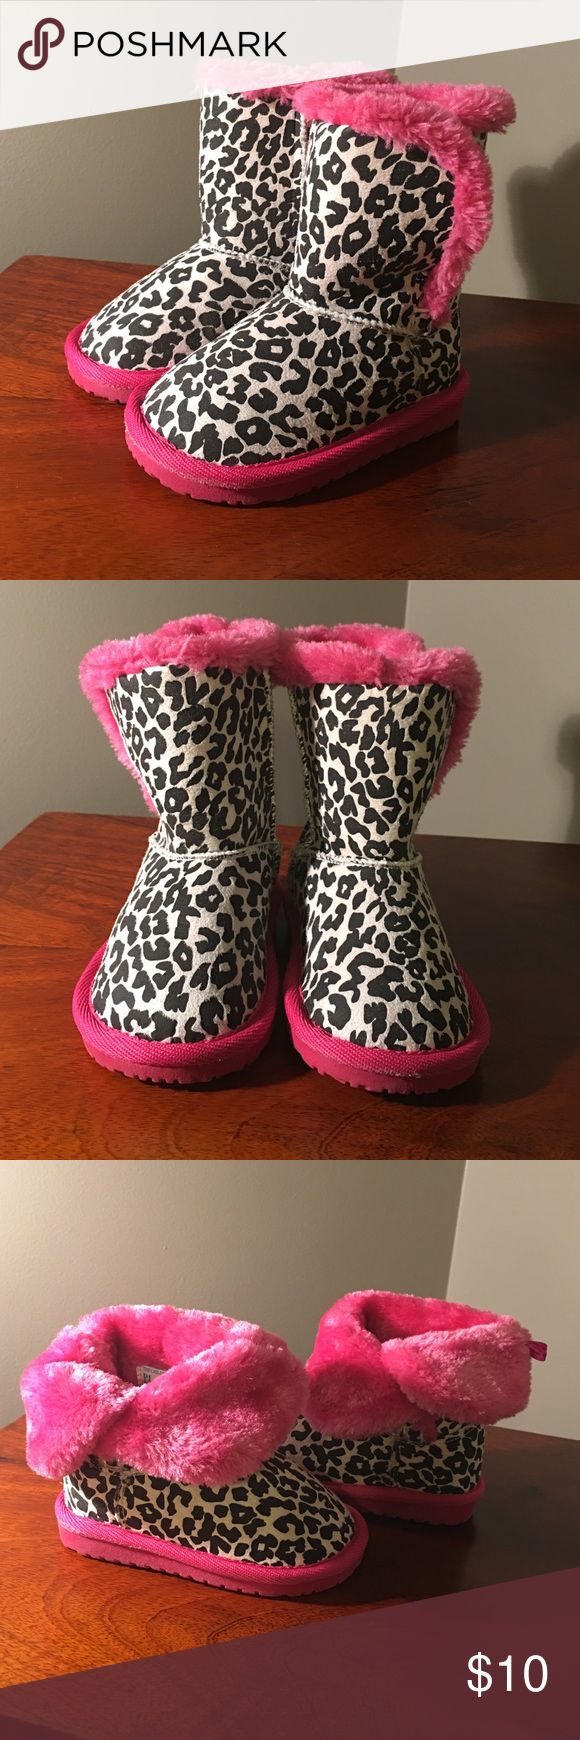 ❄️The Children's Place Toddler Winter Boots size 5 Gently used Children's Place toddler winter boots-worn 1-2 times.   Warm and fuzzy 'Ugg Style' boots in cheetah pattern with pink fur and trim. So cute on! Children's Place Shoes Boots